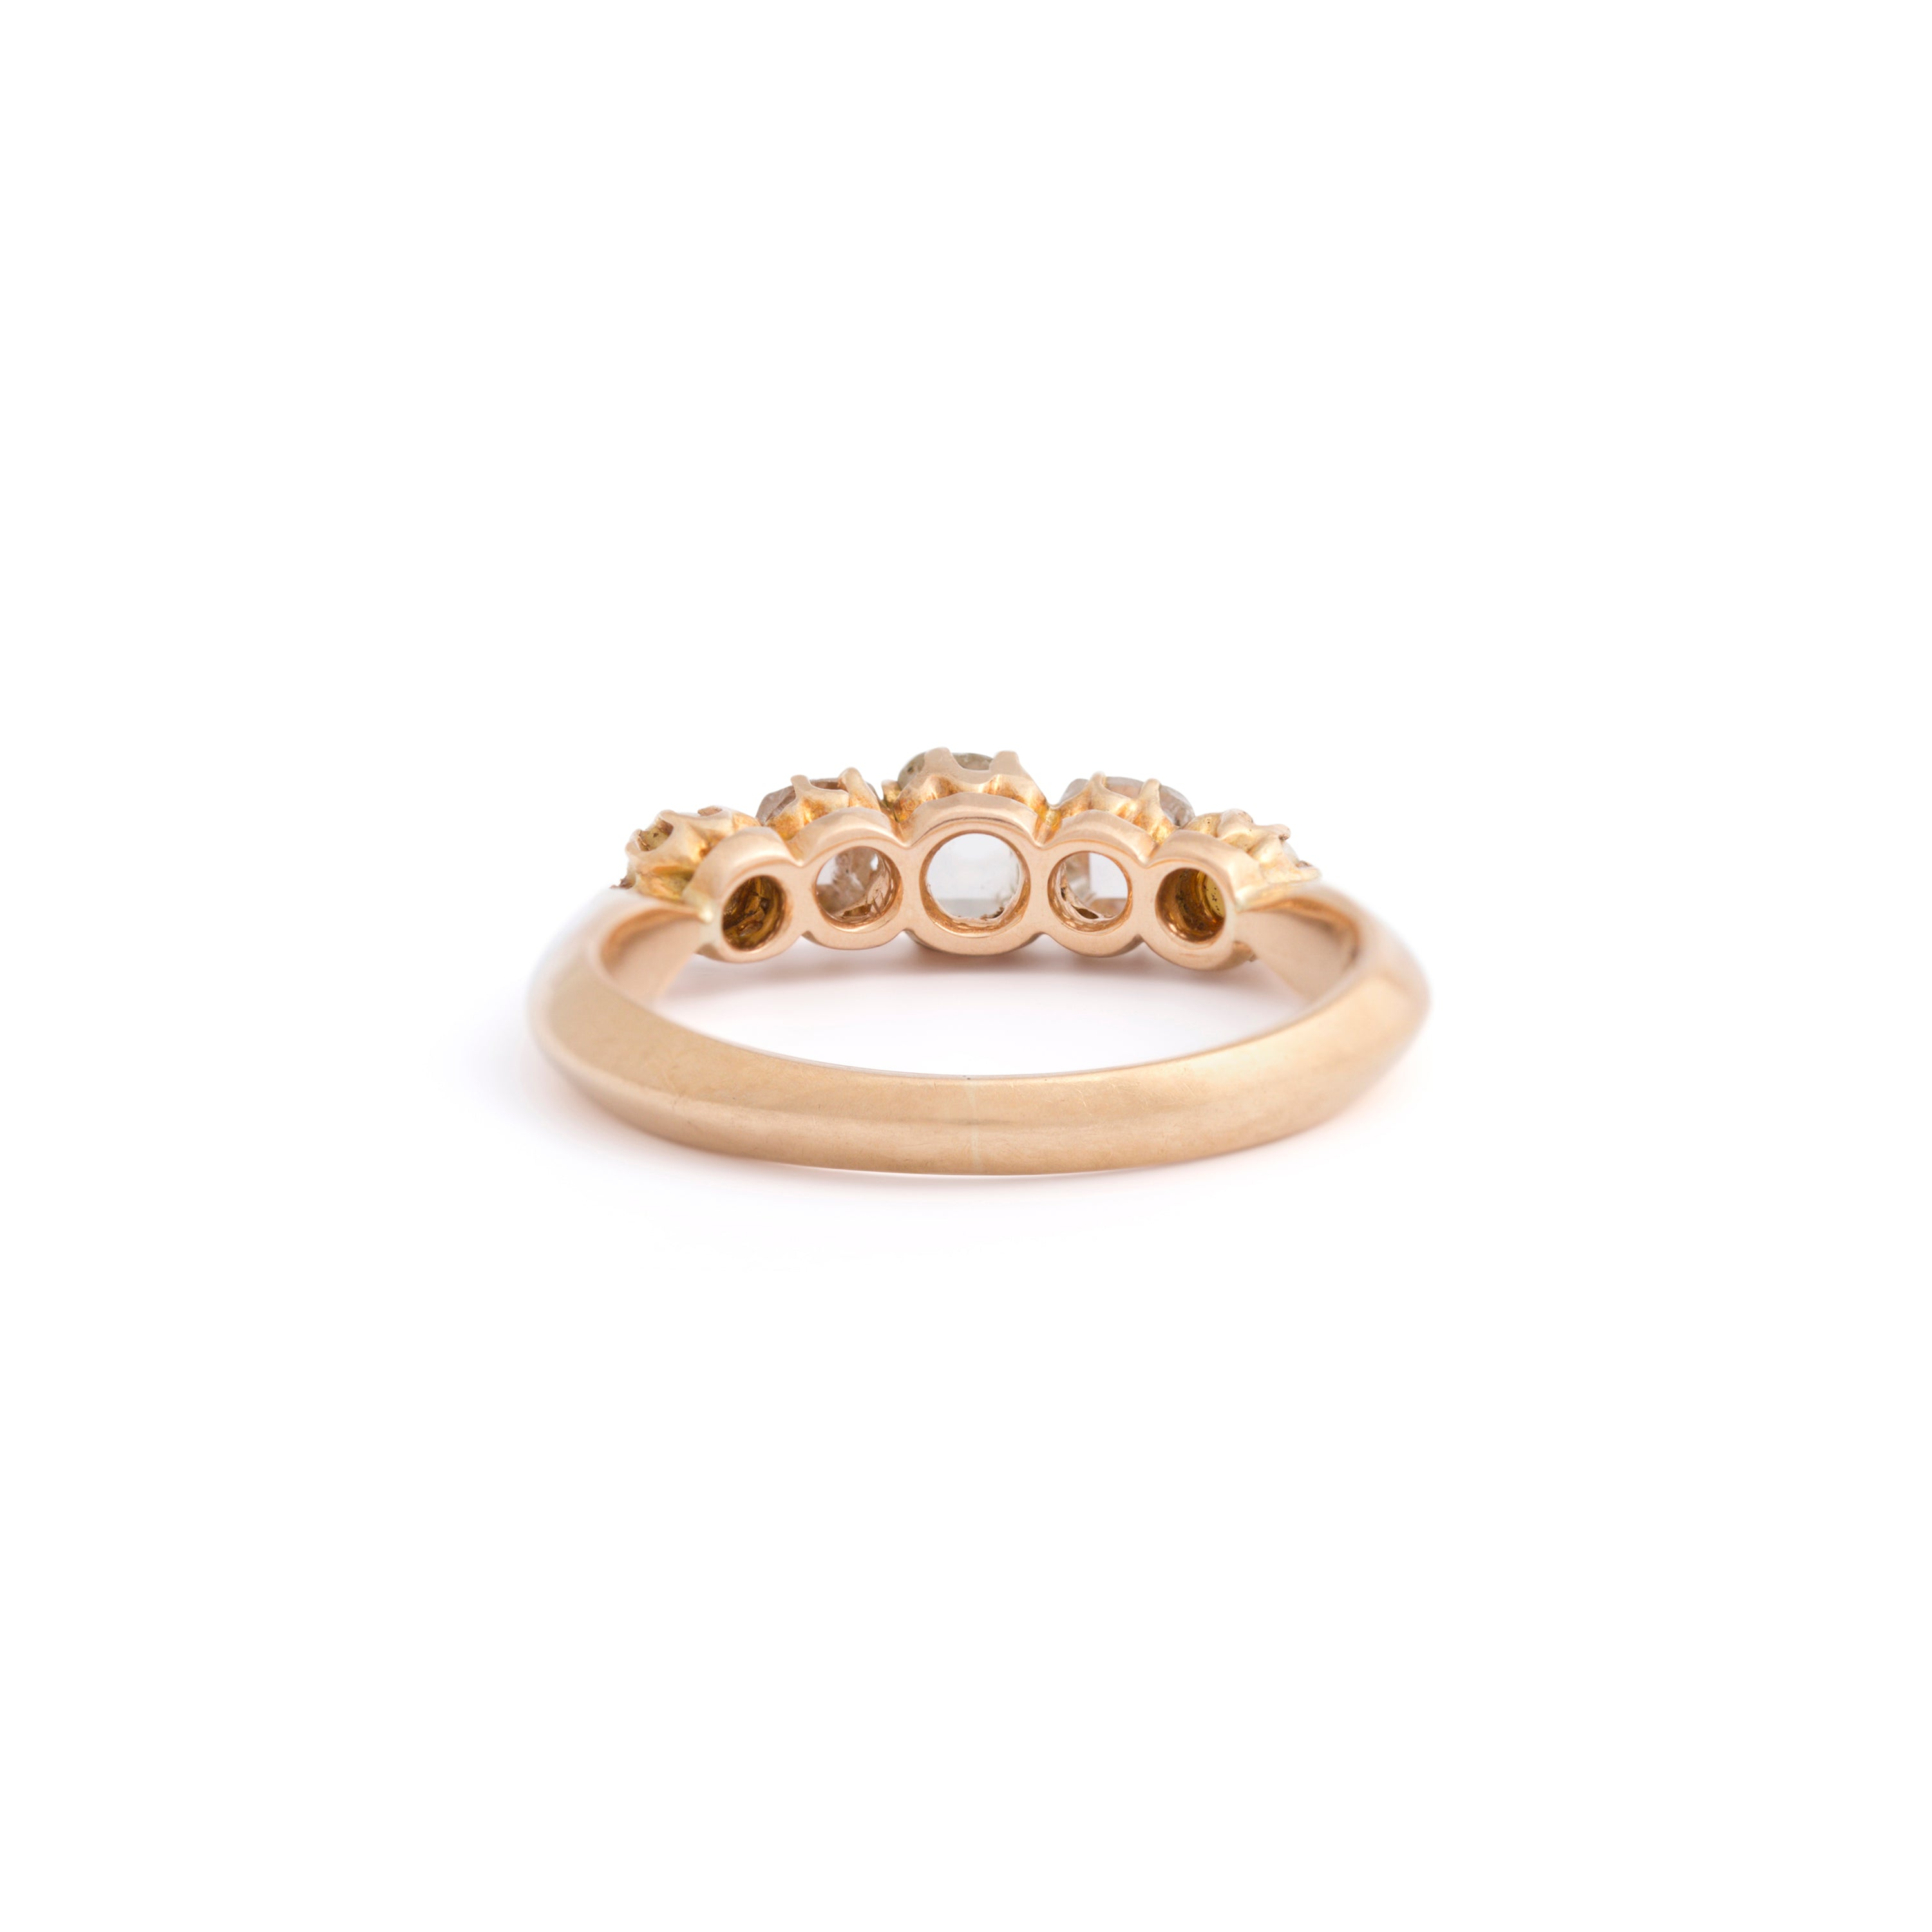 Victorian 5-Stone Pearl and Old Cut Diamond 18k Gold Ring